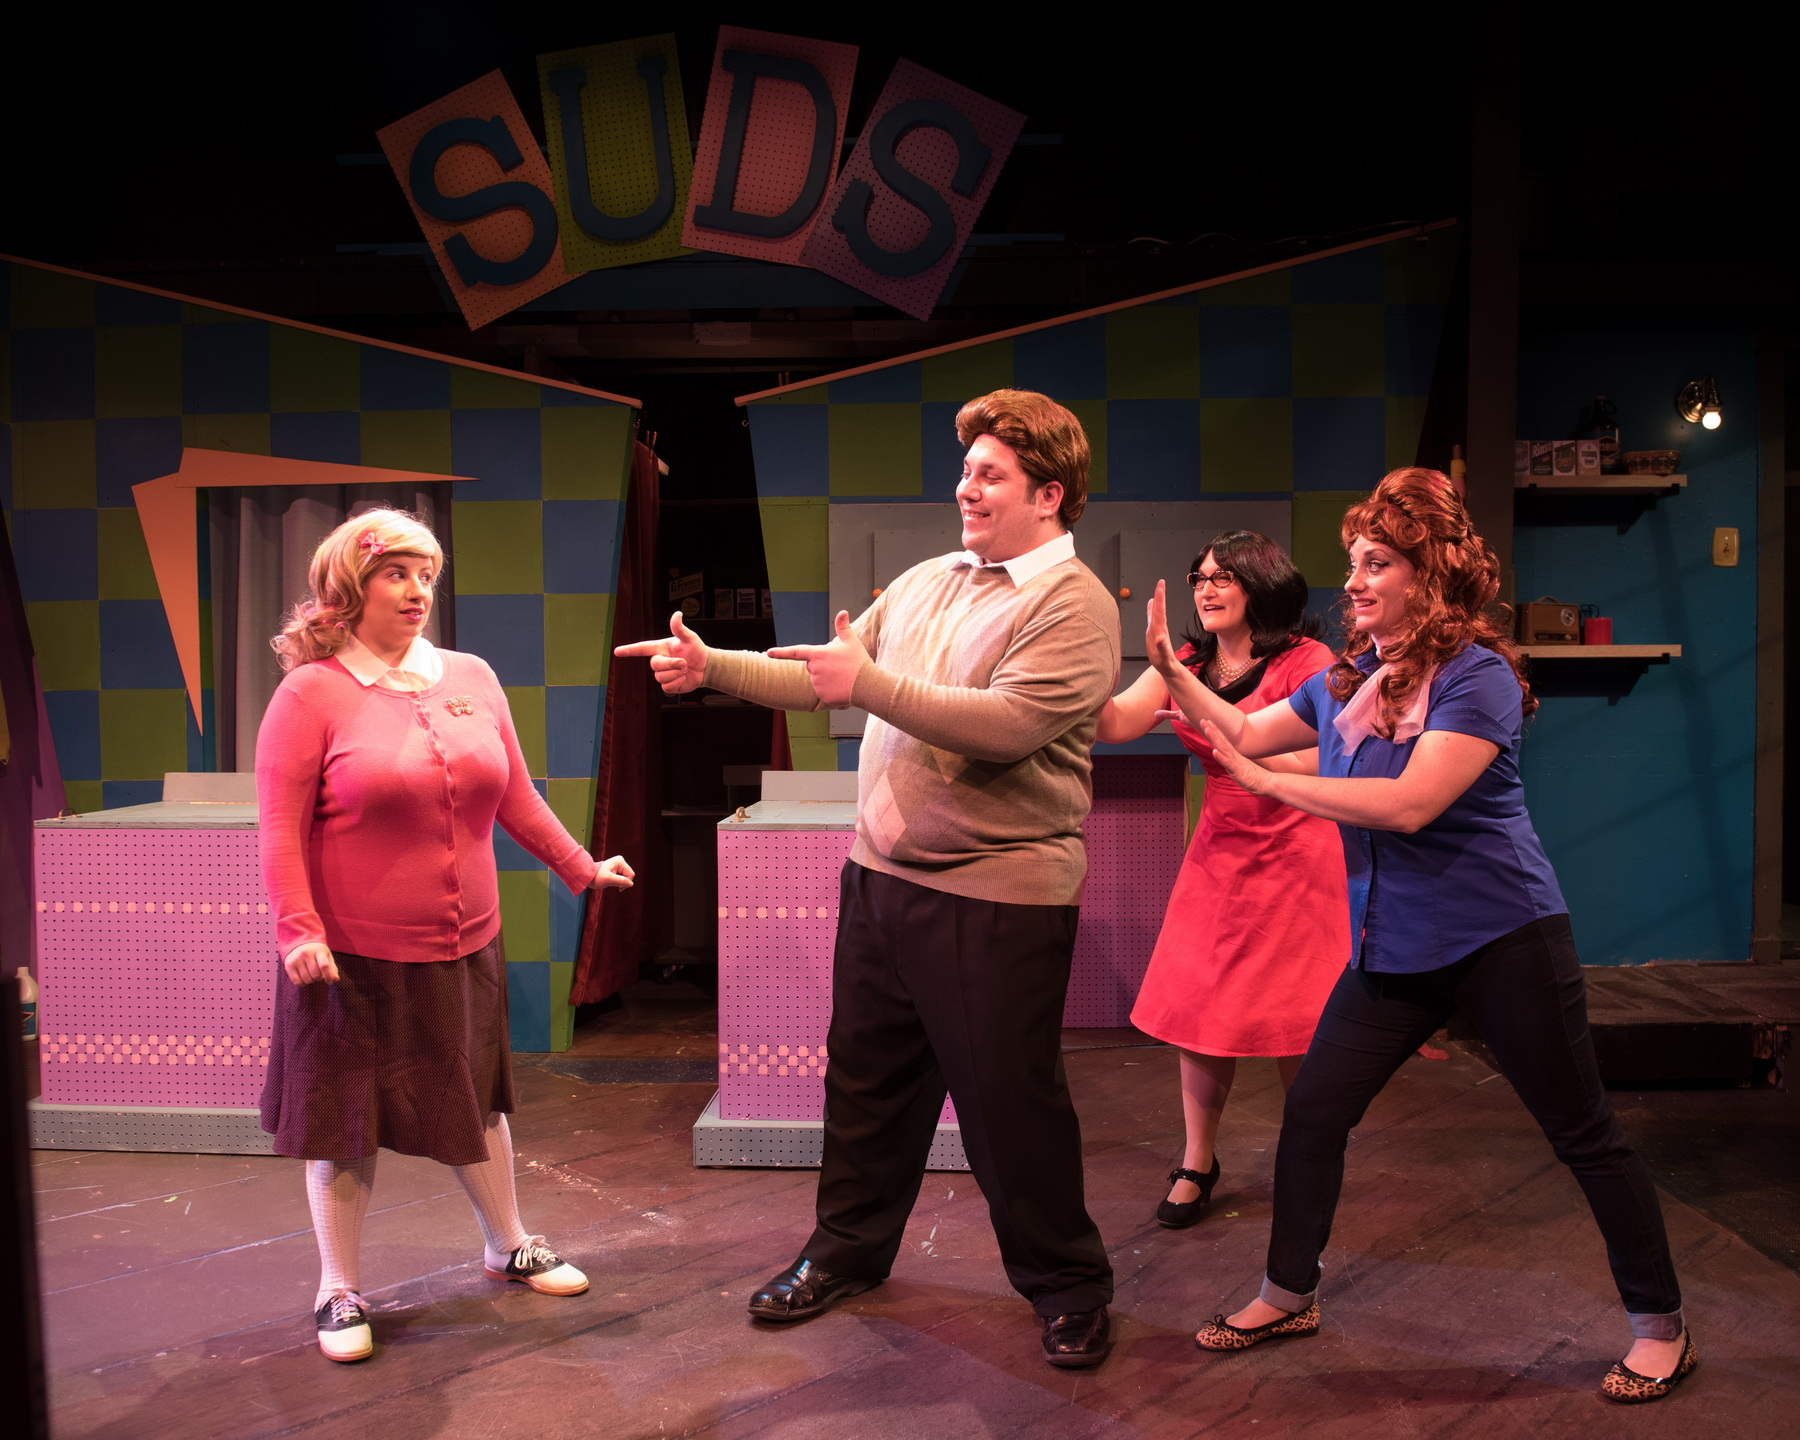 Ellie St. Cyr as Cindy, Matt Cuffari as Mr. Right, Kate Klotzbach as Dee Dee and Eileen Canepari as Marge